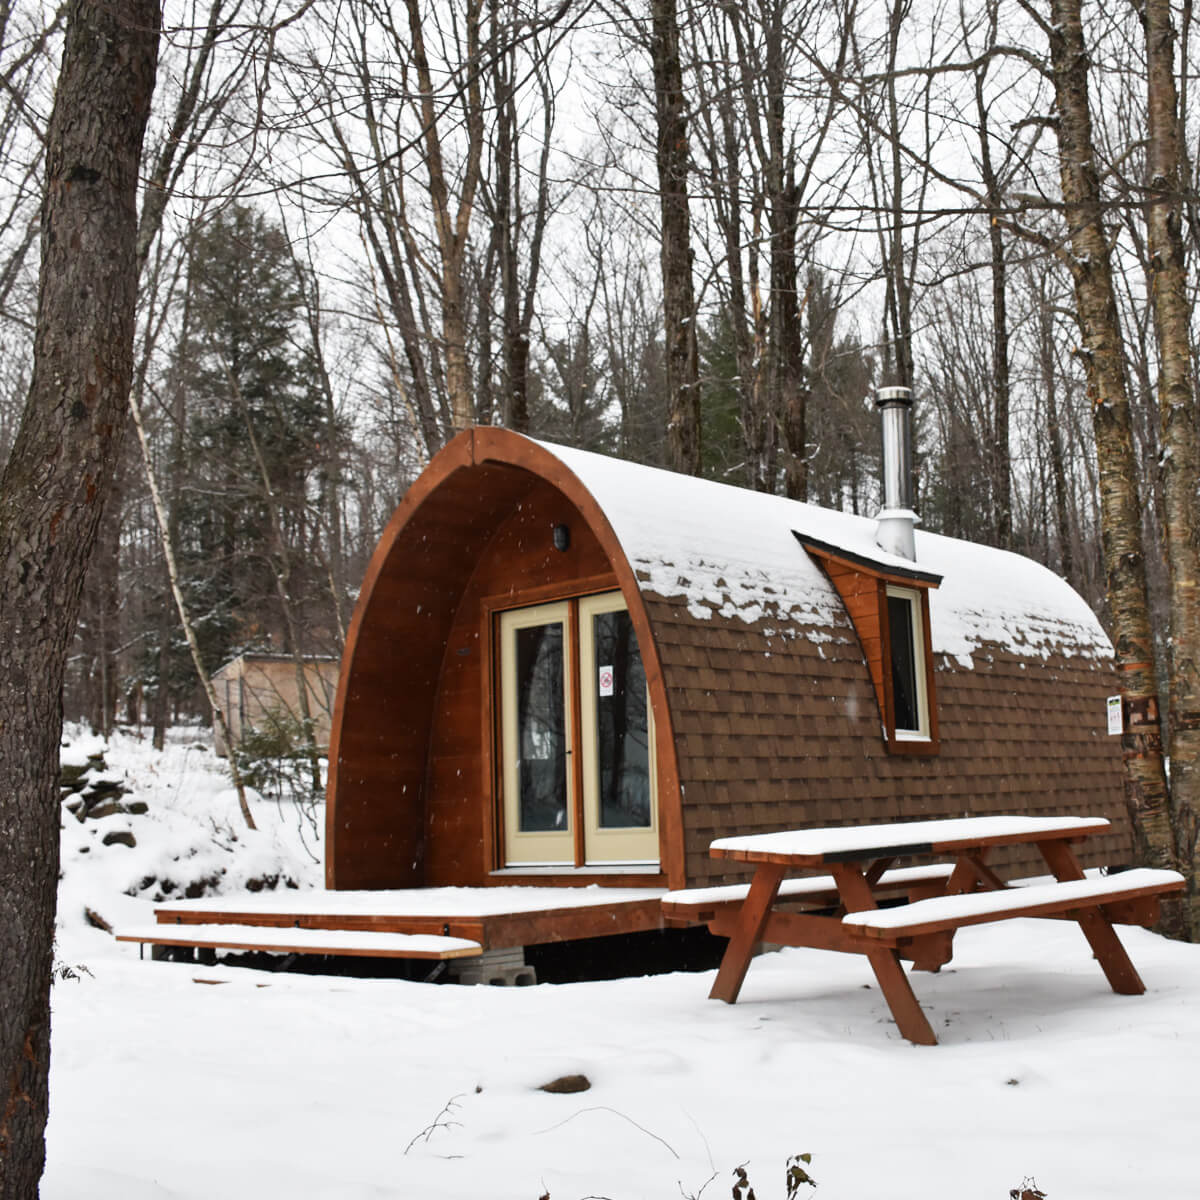 Discover the 7 types of ecological accommodation offered at Au Diable Vert - 4-season mountain and outdoor resort at Glen Sutton